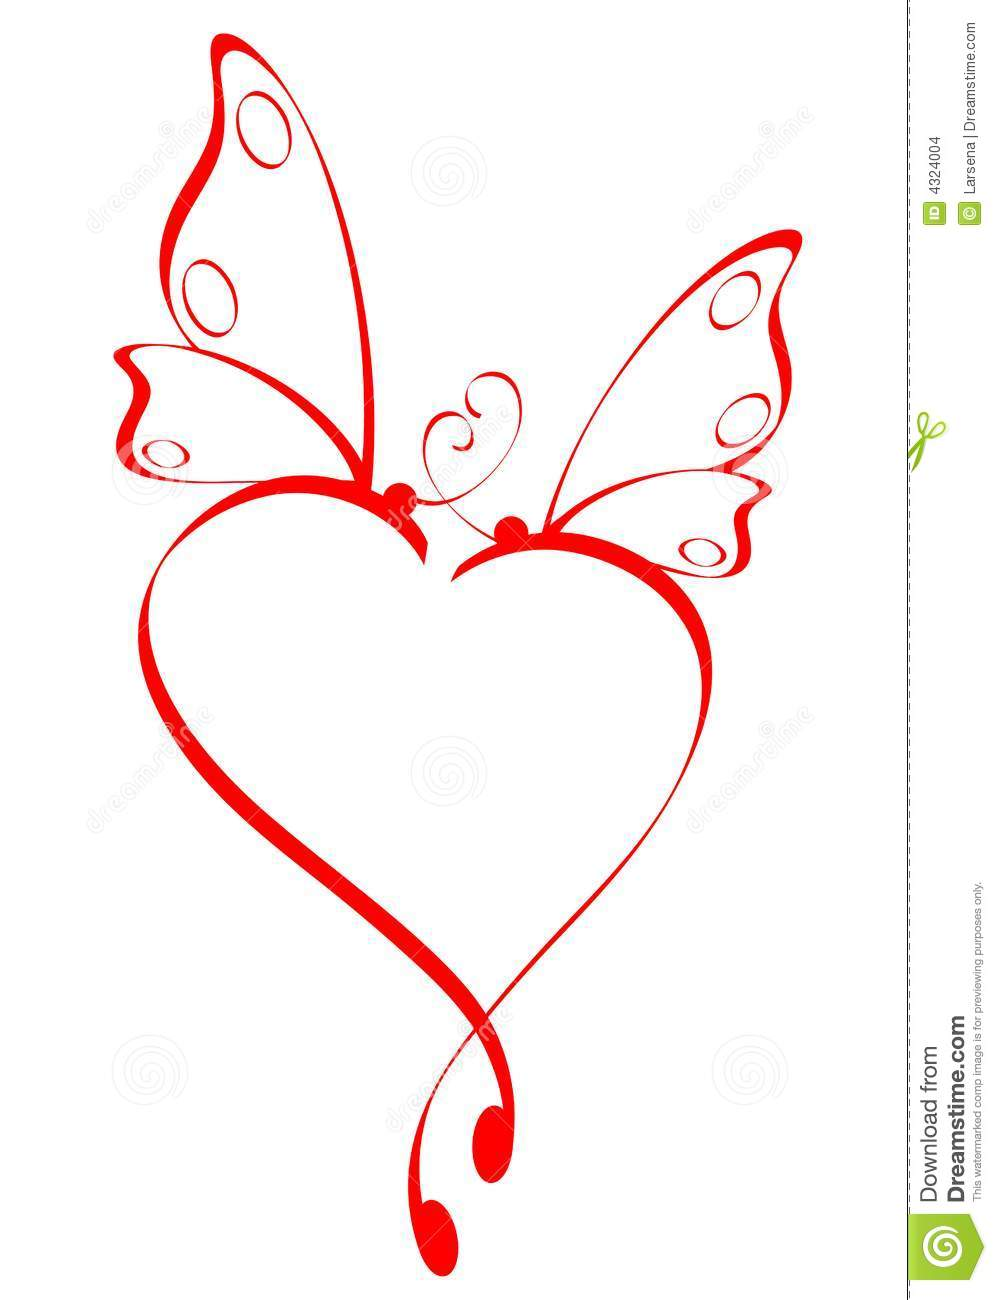 Butterfly hearts clipart. Heart stock images image